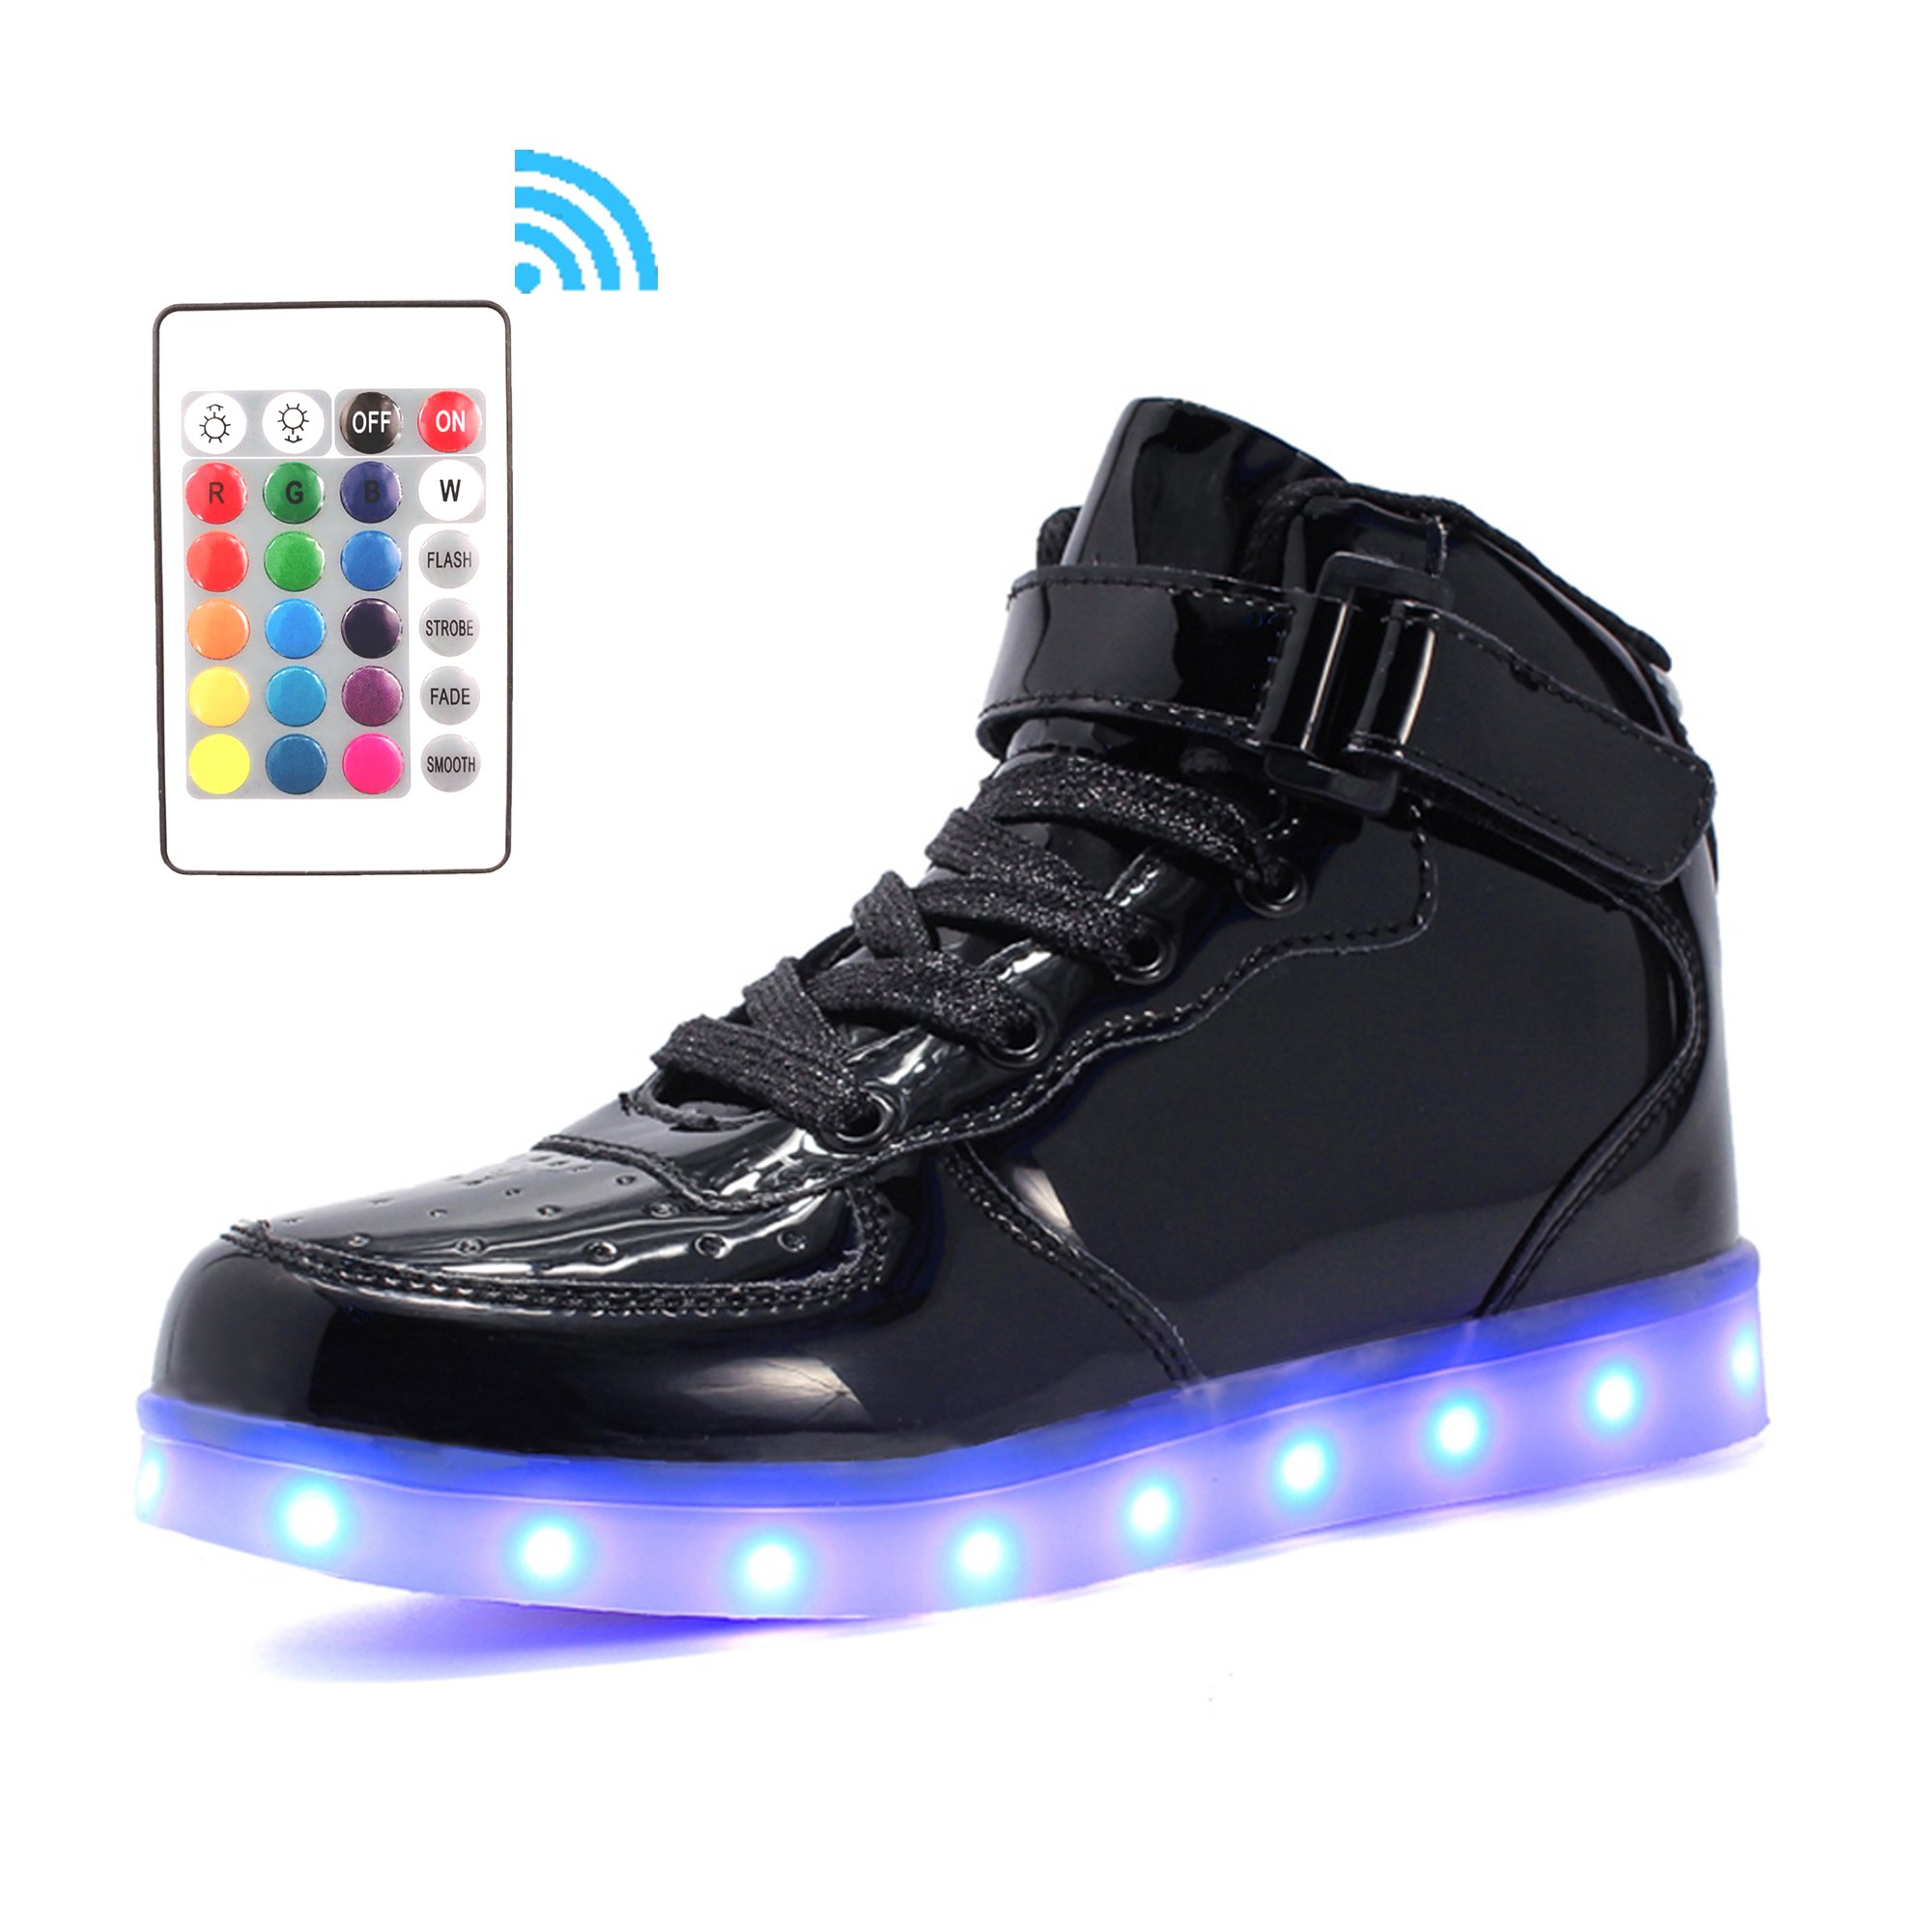 Voovix Kids LED Light up Shoes High-top Flashing Shiny Sneakers with Remote Control for Boys and Girls(black01,US1/CN33)